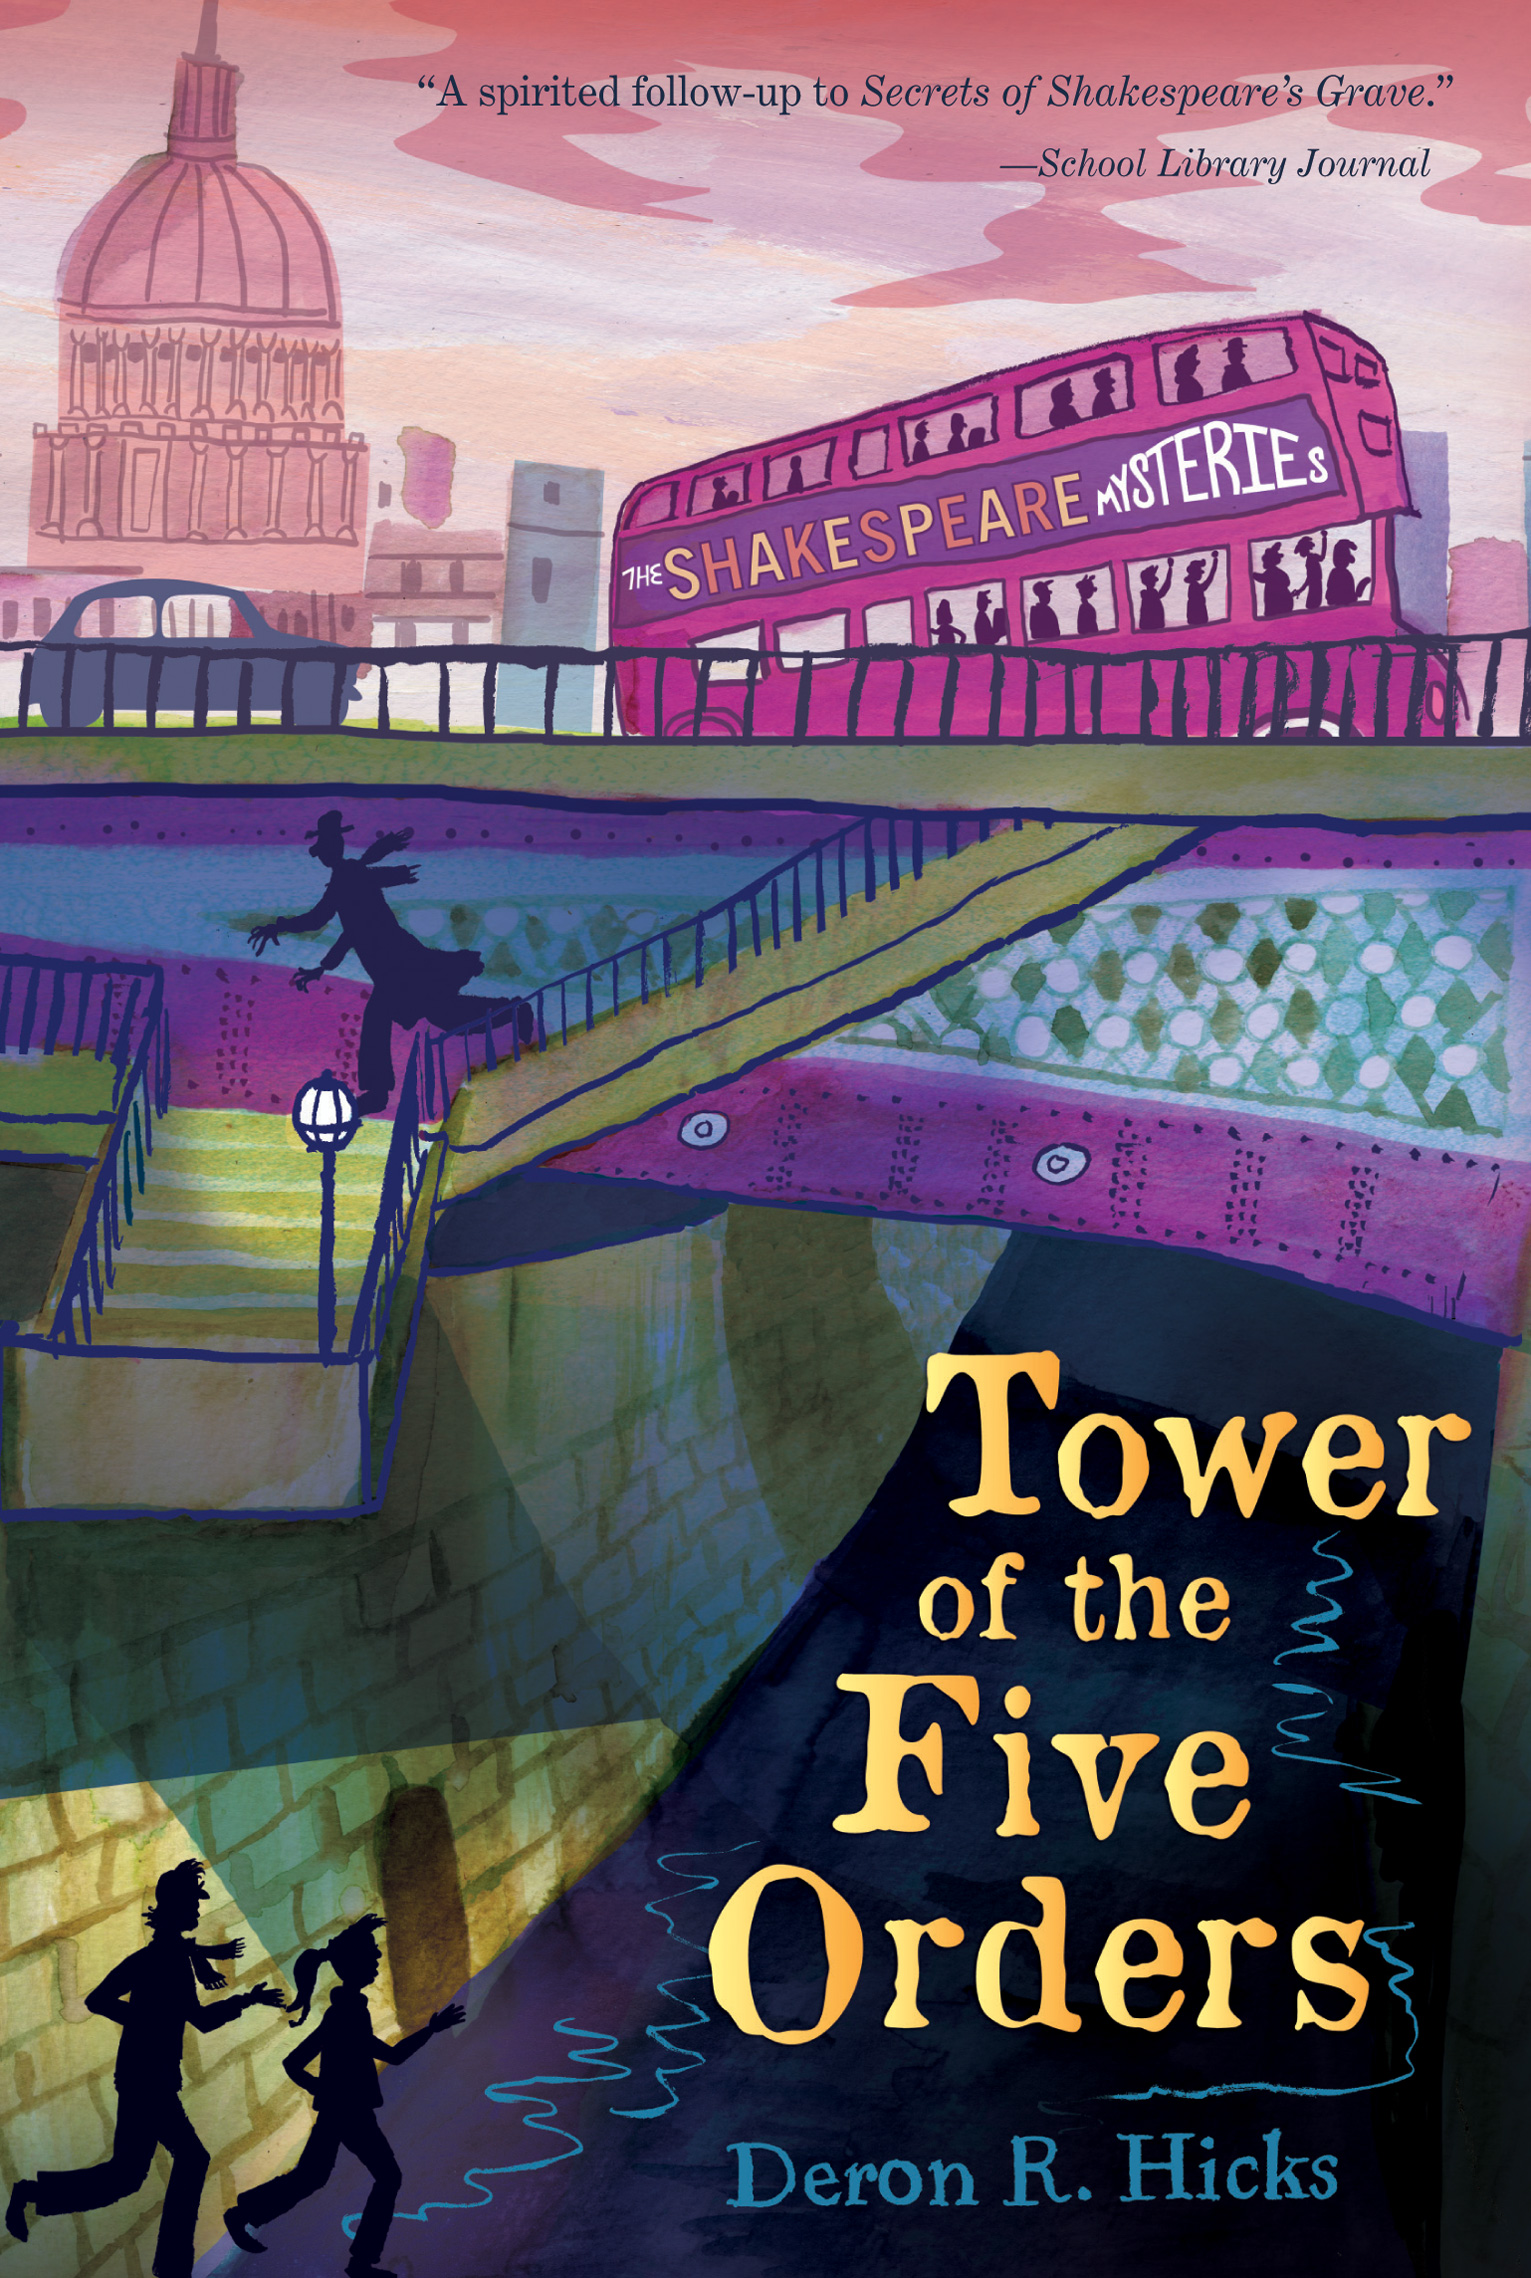 Tower of the Five Orders-9780544336308